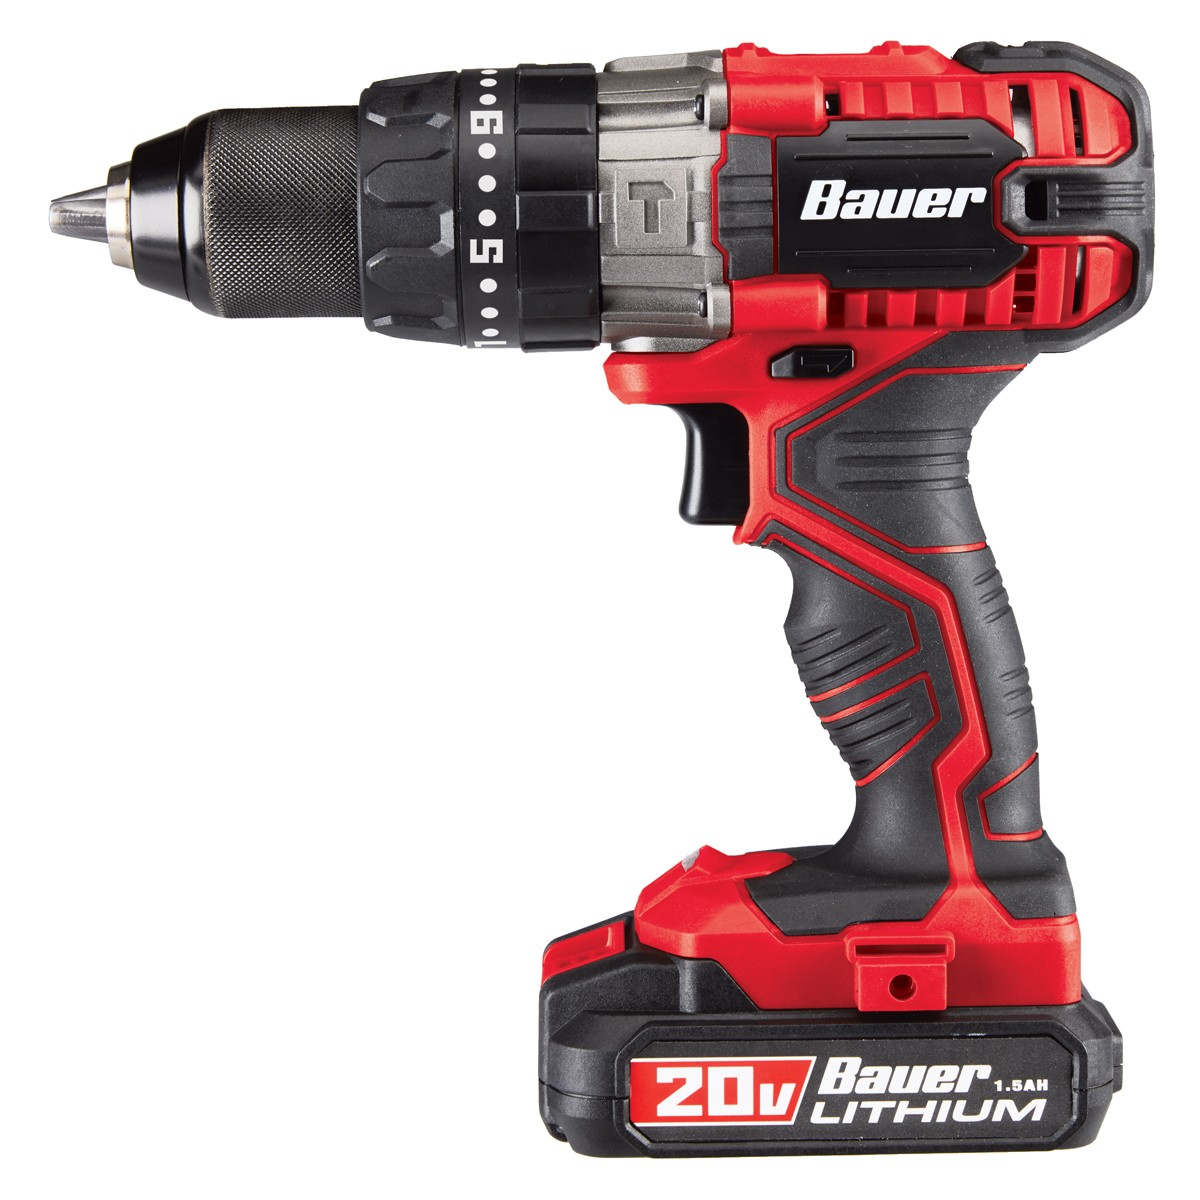 Bauer 20v Tools Are Clones Of Uk Brand Powerplus 20v Tools